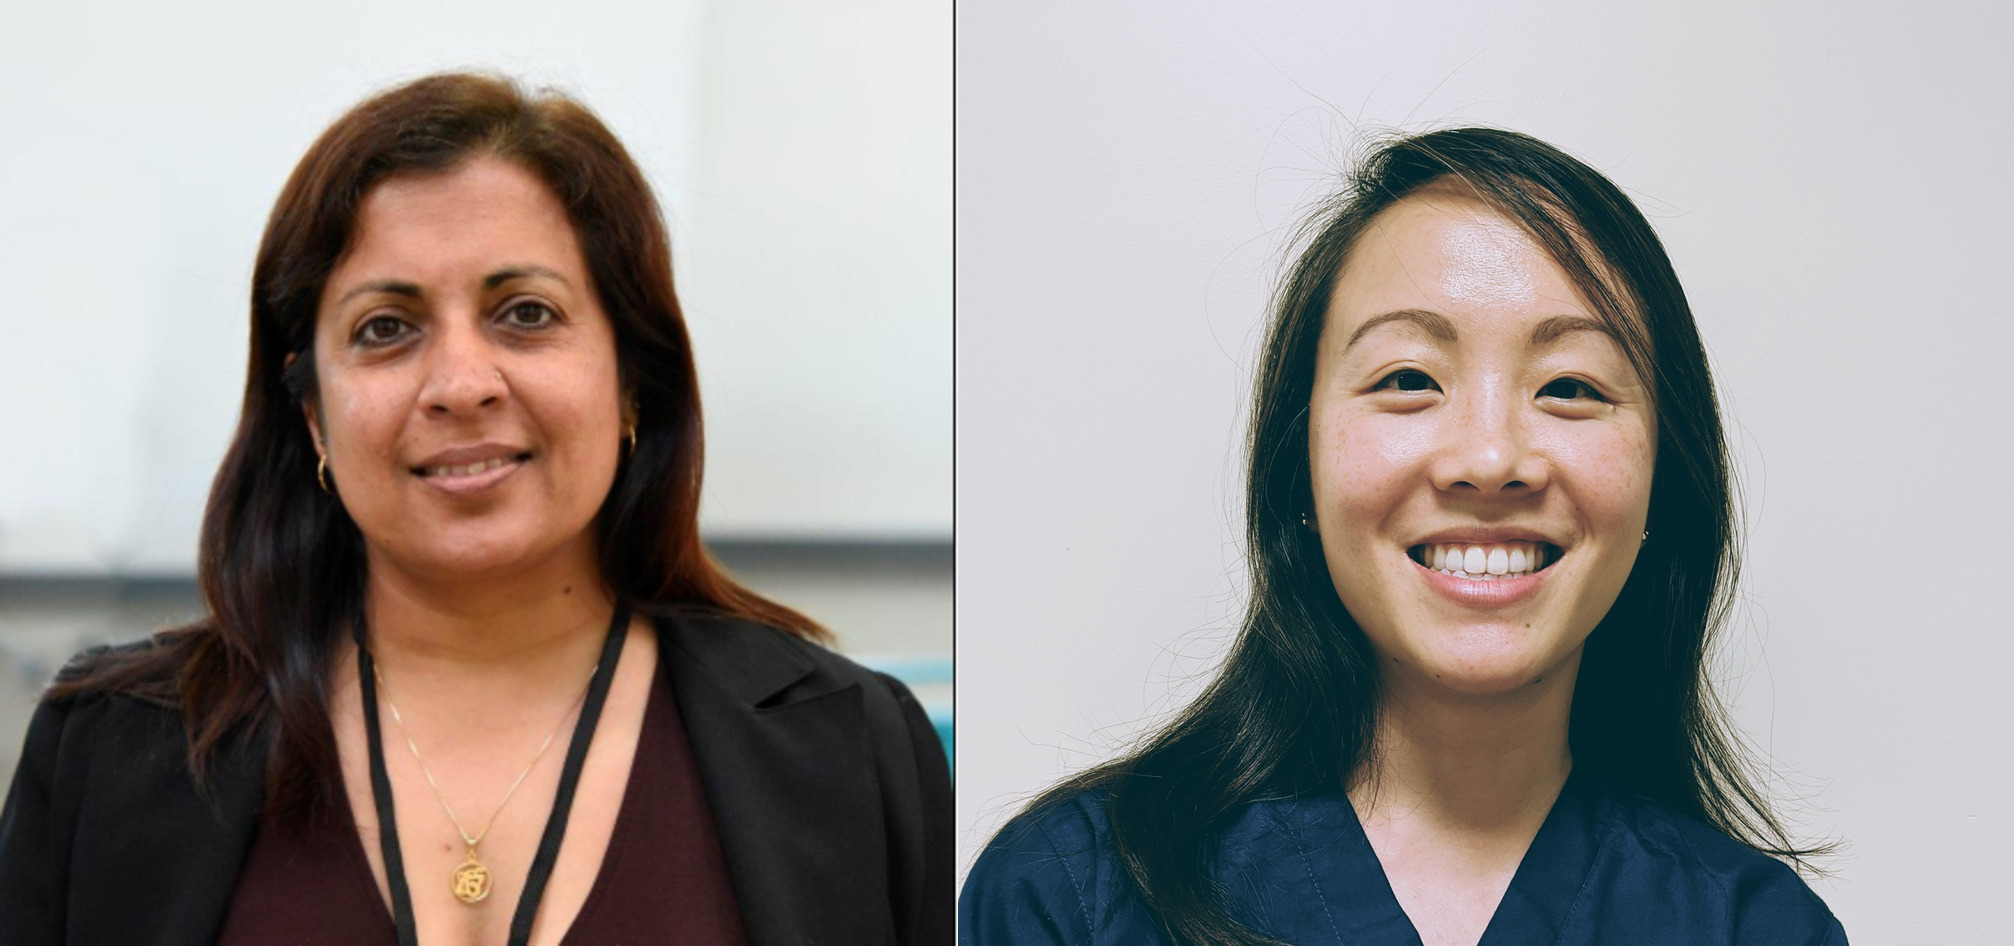 Headshots of Shelly de Peralta and Yichun Michelle Fang